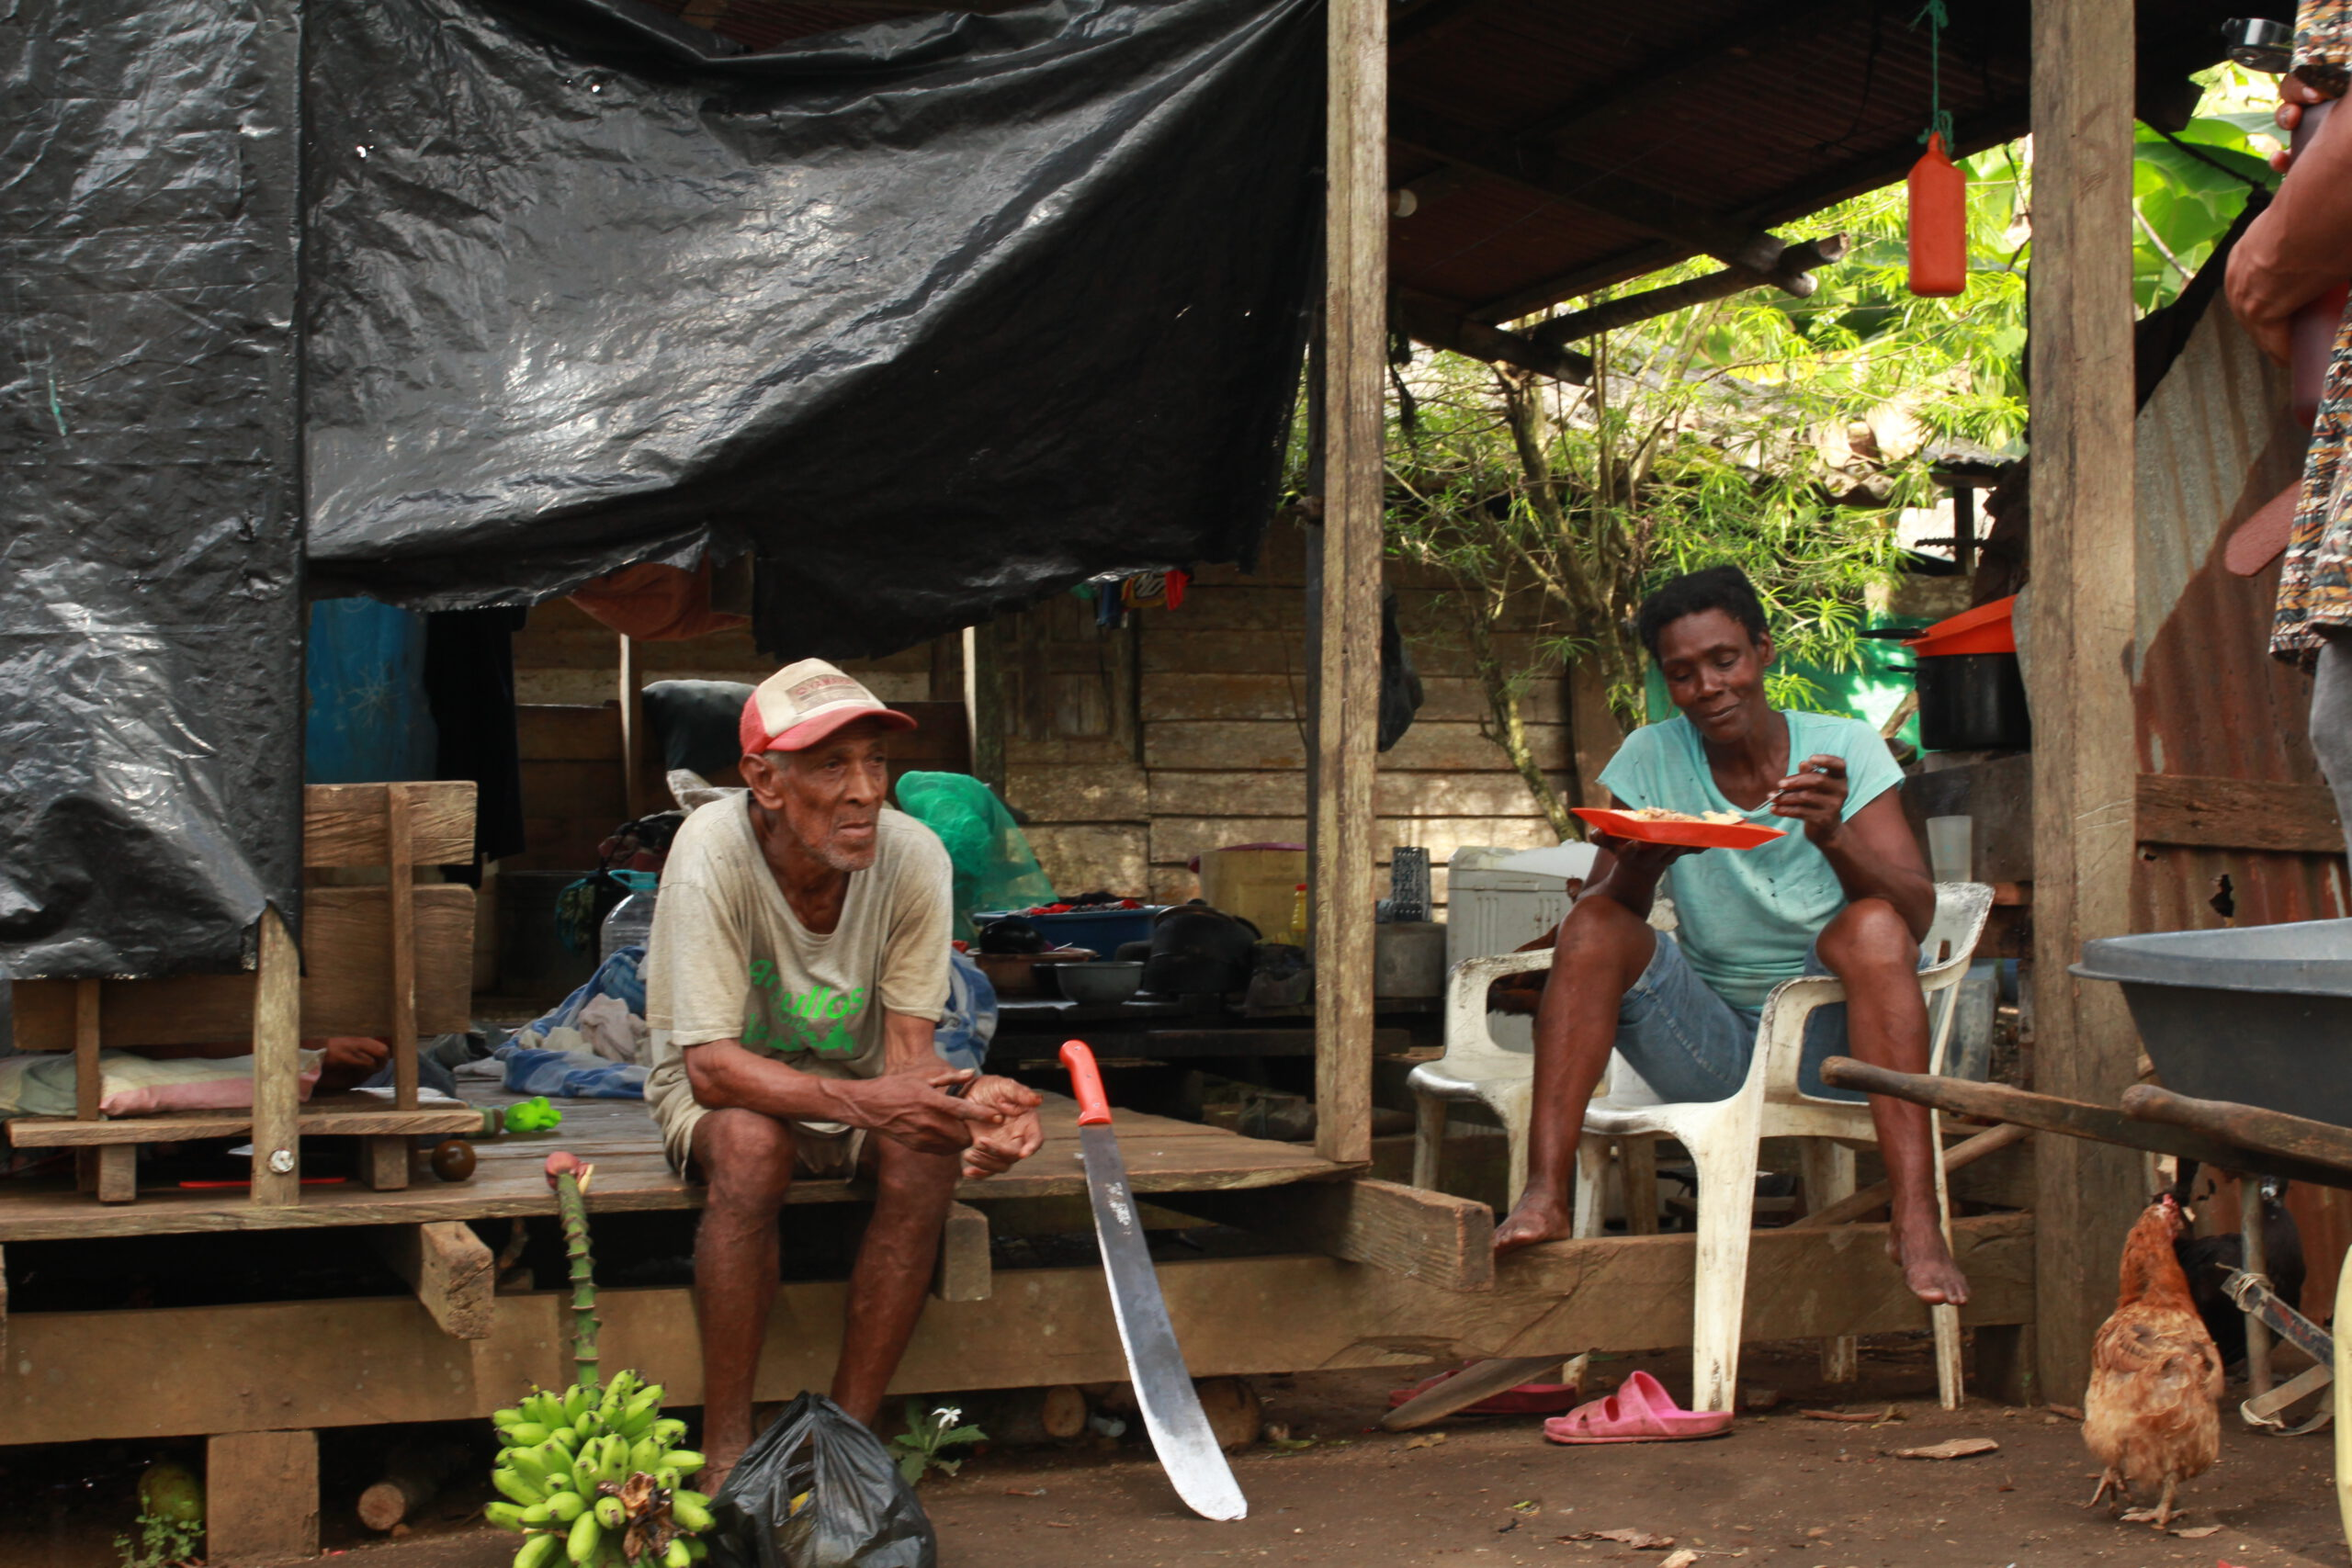 The art of living in Chocó – How remote local communities support the national protests in Colombia